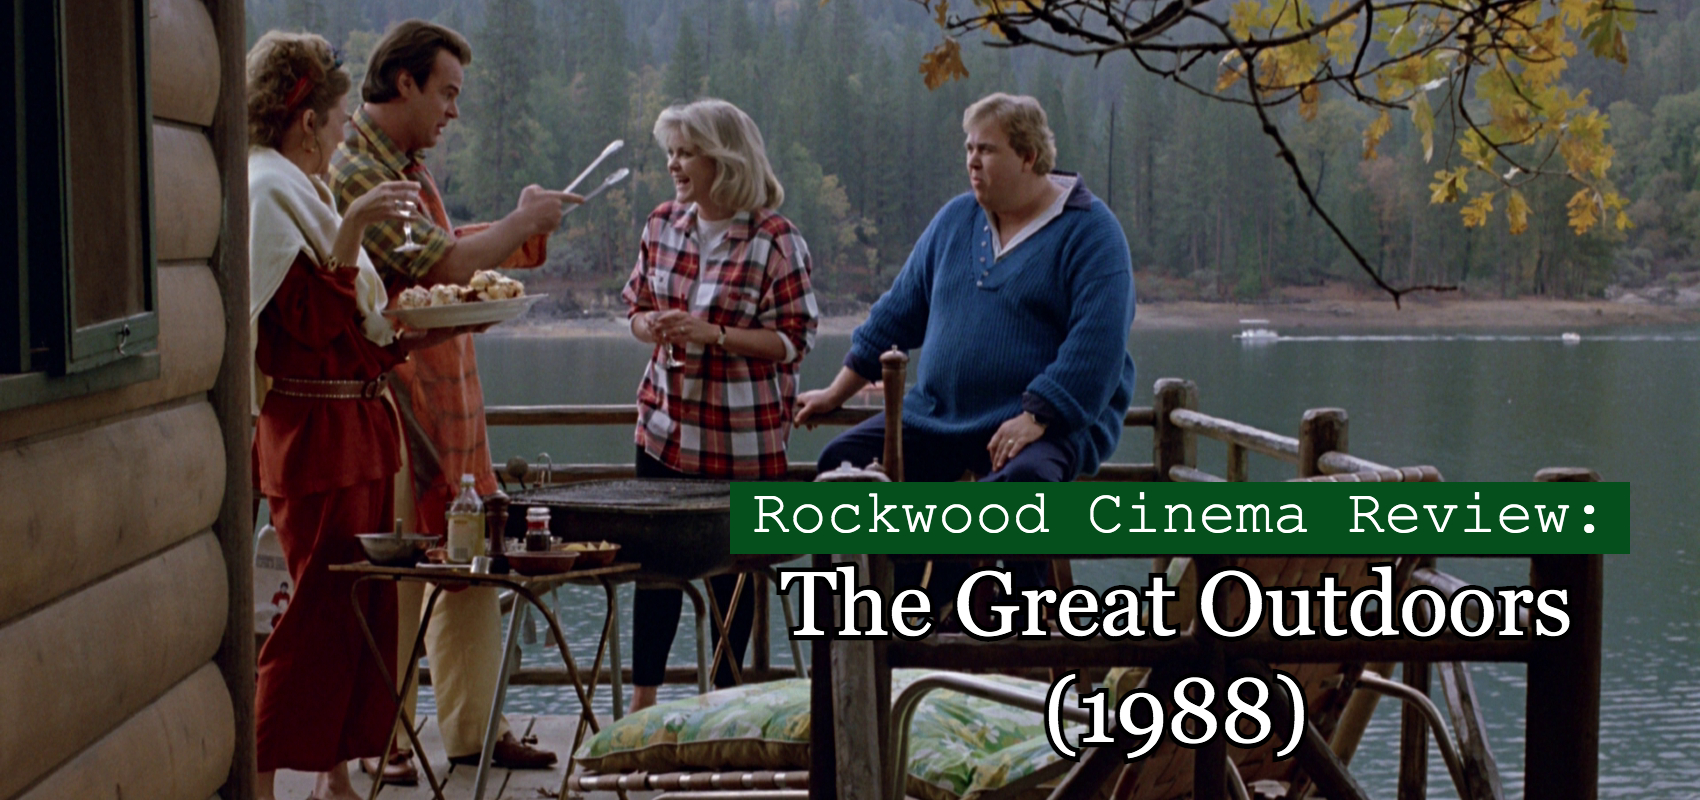 Scene from The Great Outdoors with John Candy, Stephanie Faracy, Annette Bening and Dan Aykroyd outdoors on a patio by a lake.